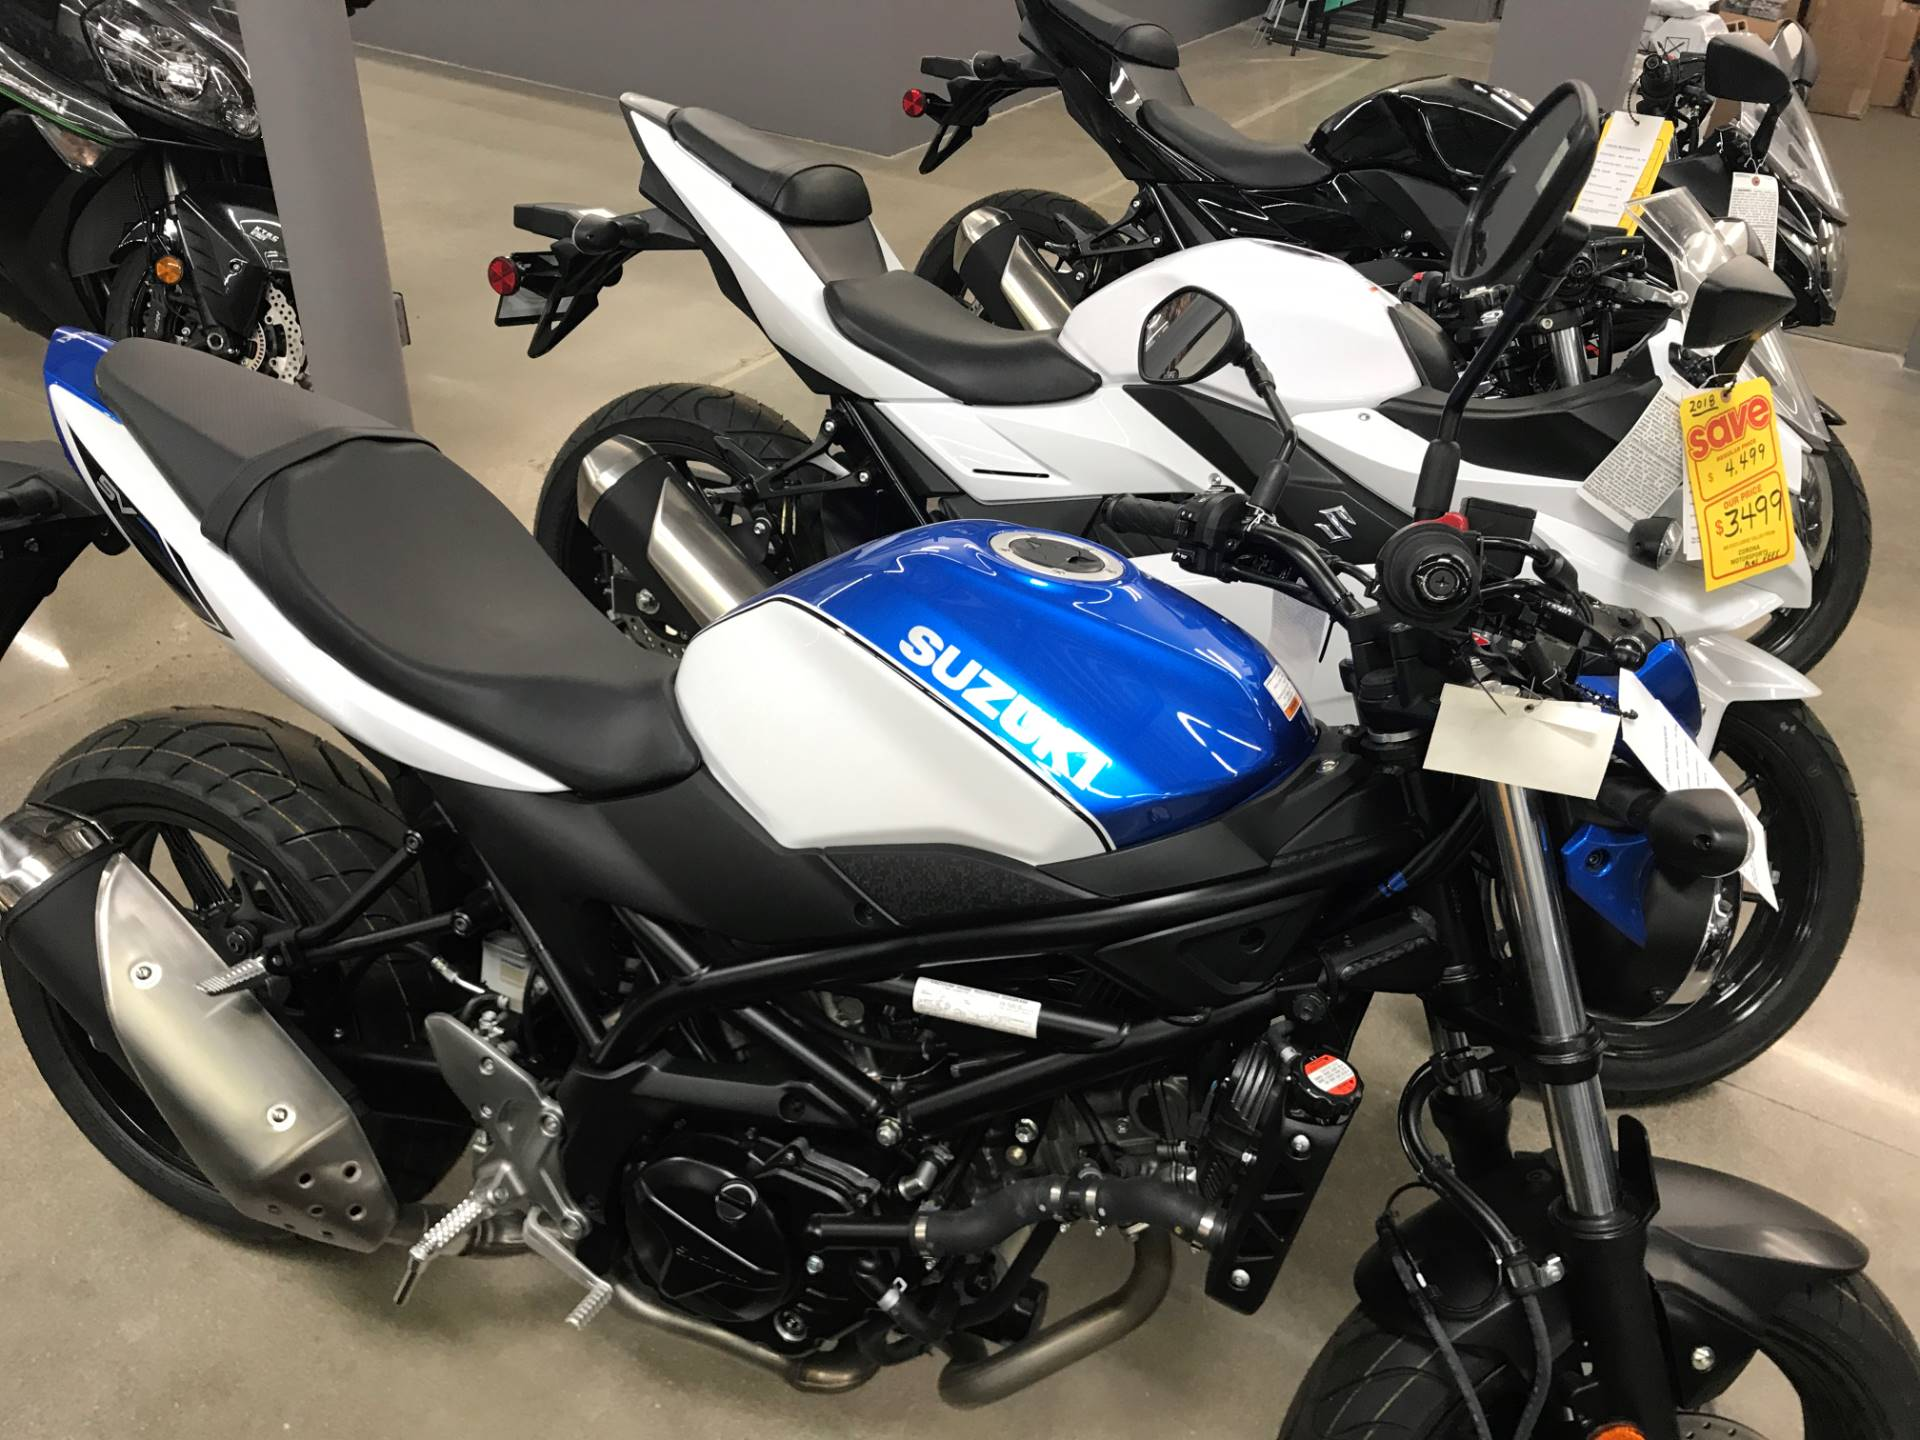 2018 Suzuki SV650 in Corona, California - Photo 1